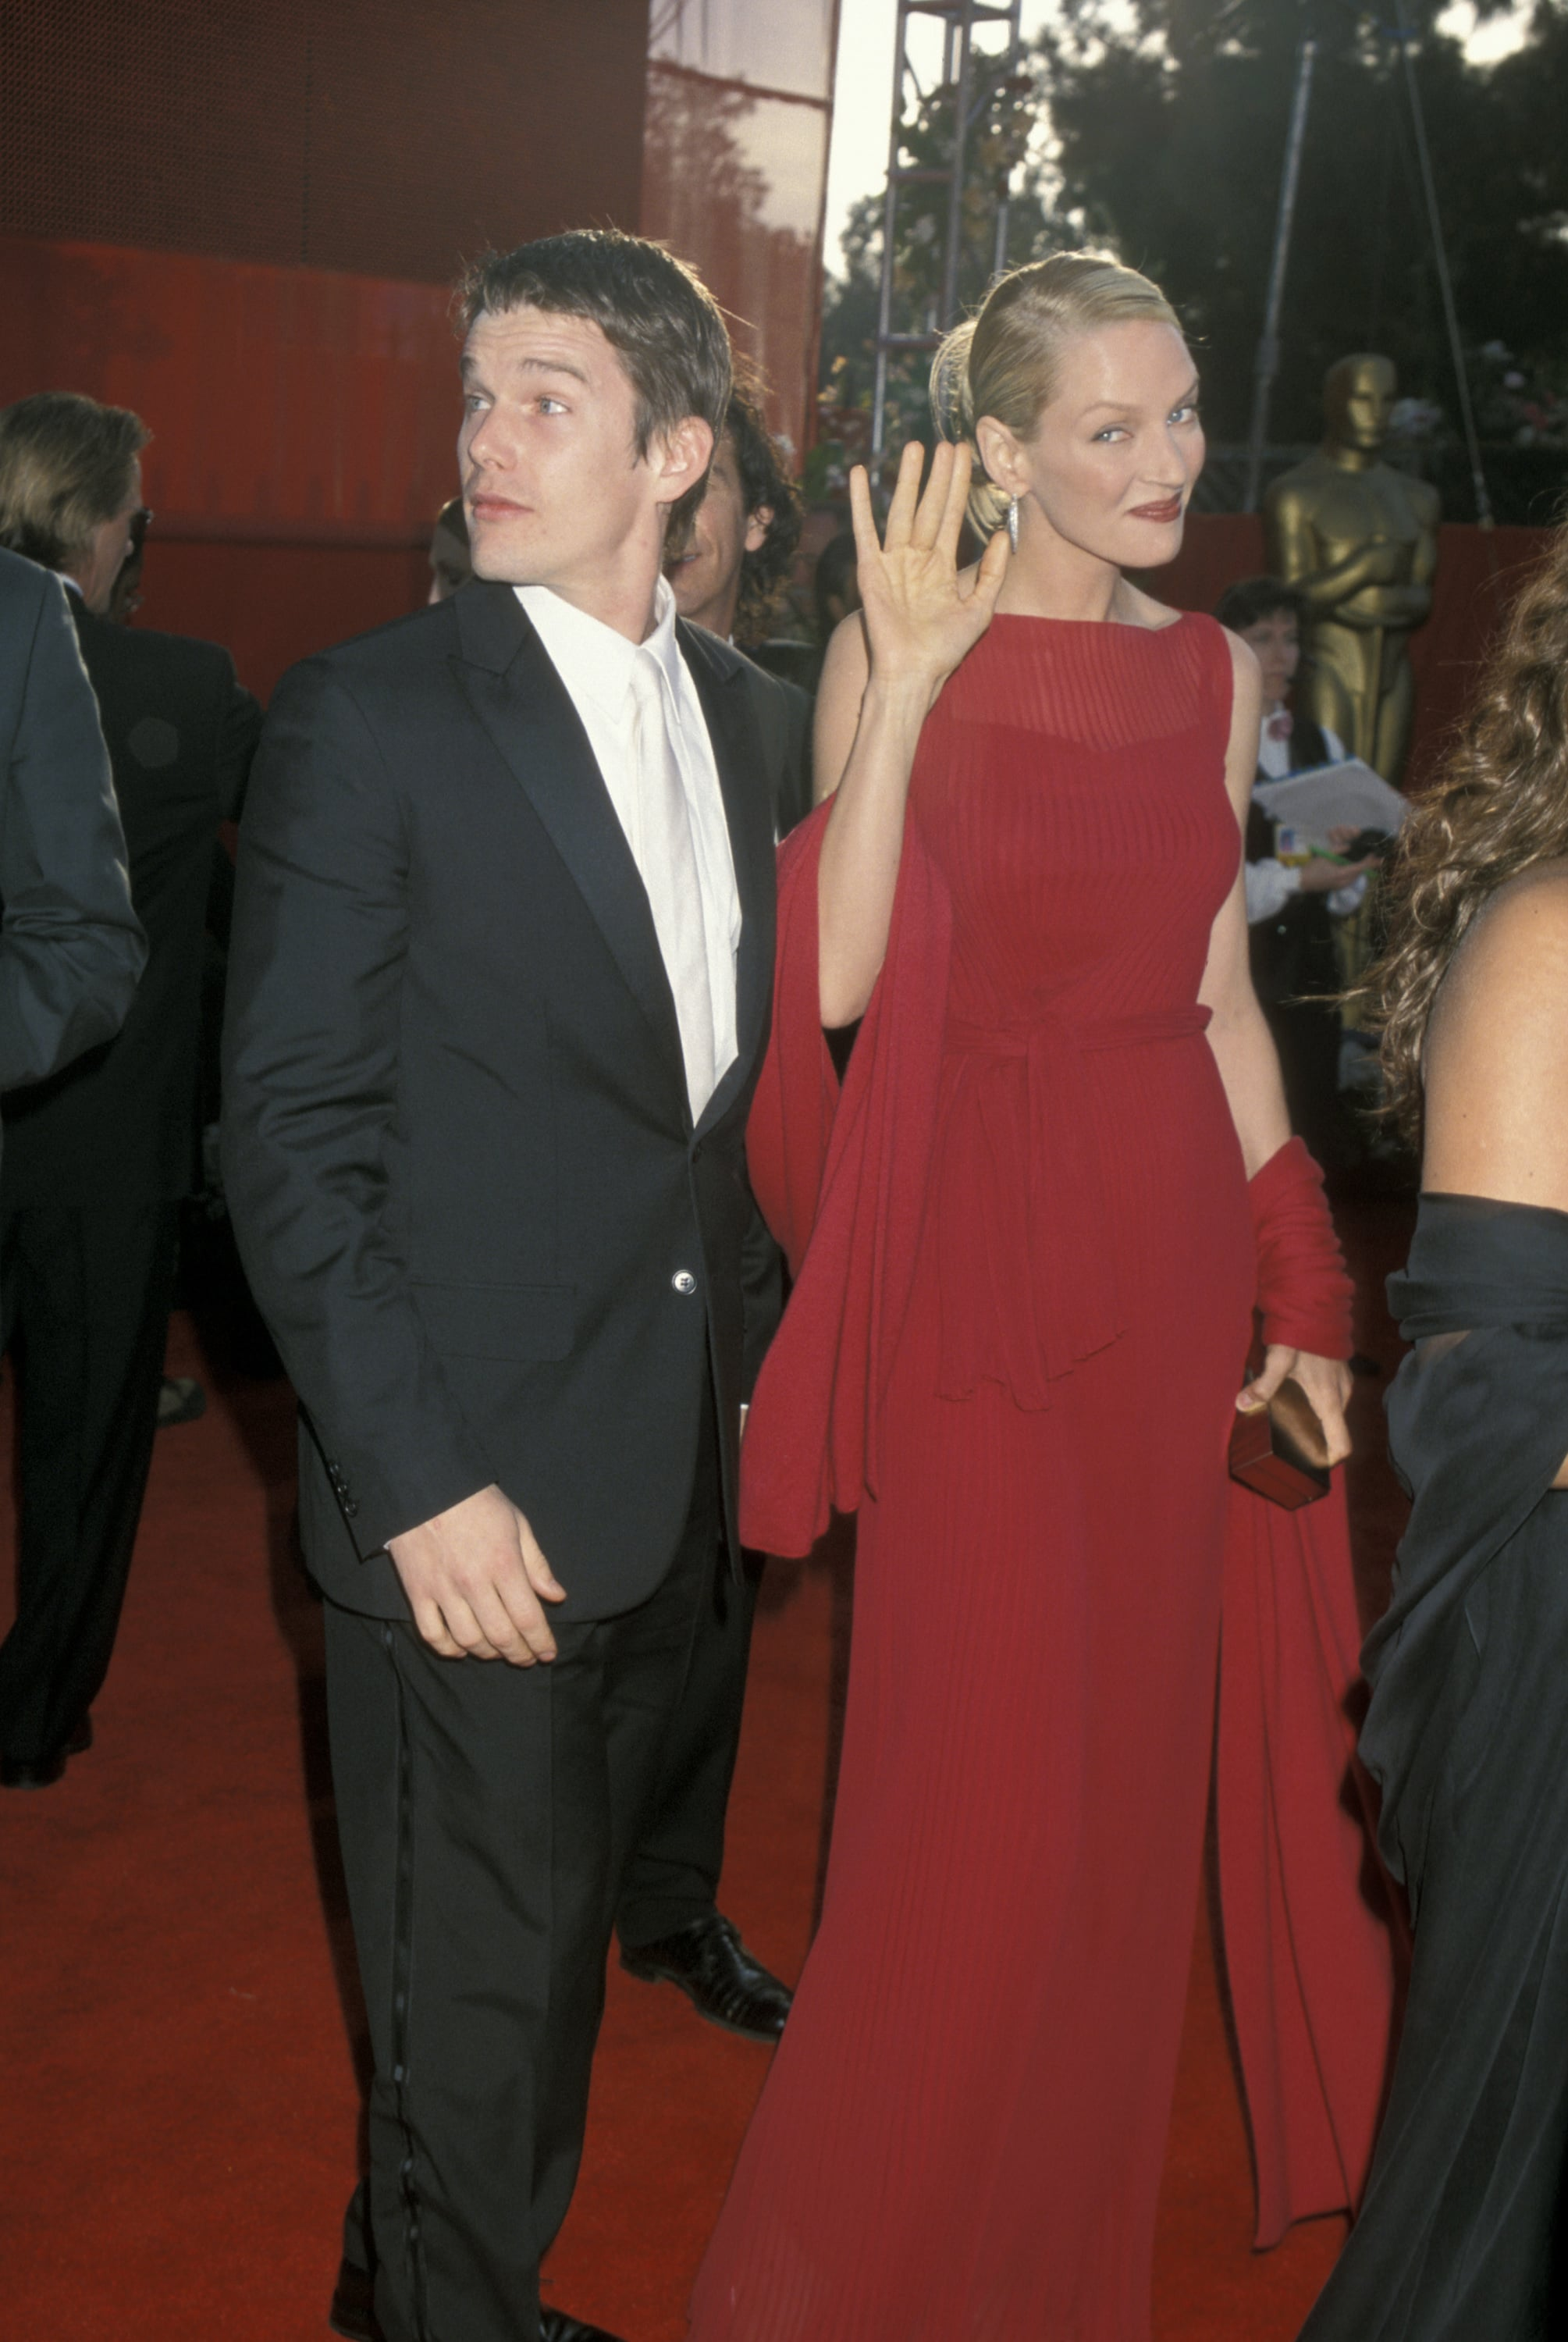 Uma Thurman at the 2000 Academy Awards